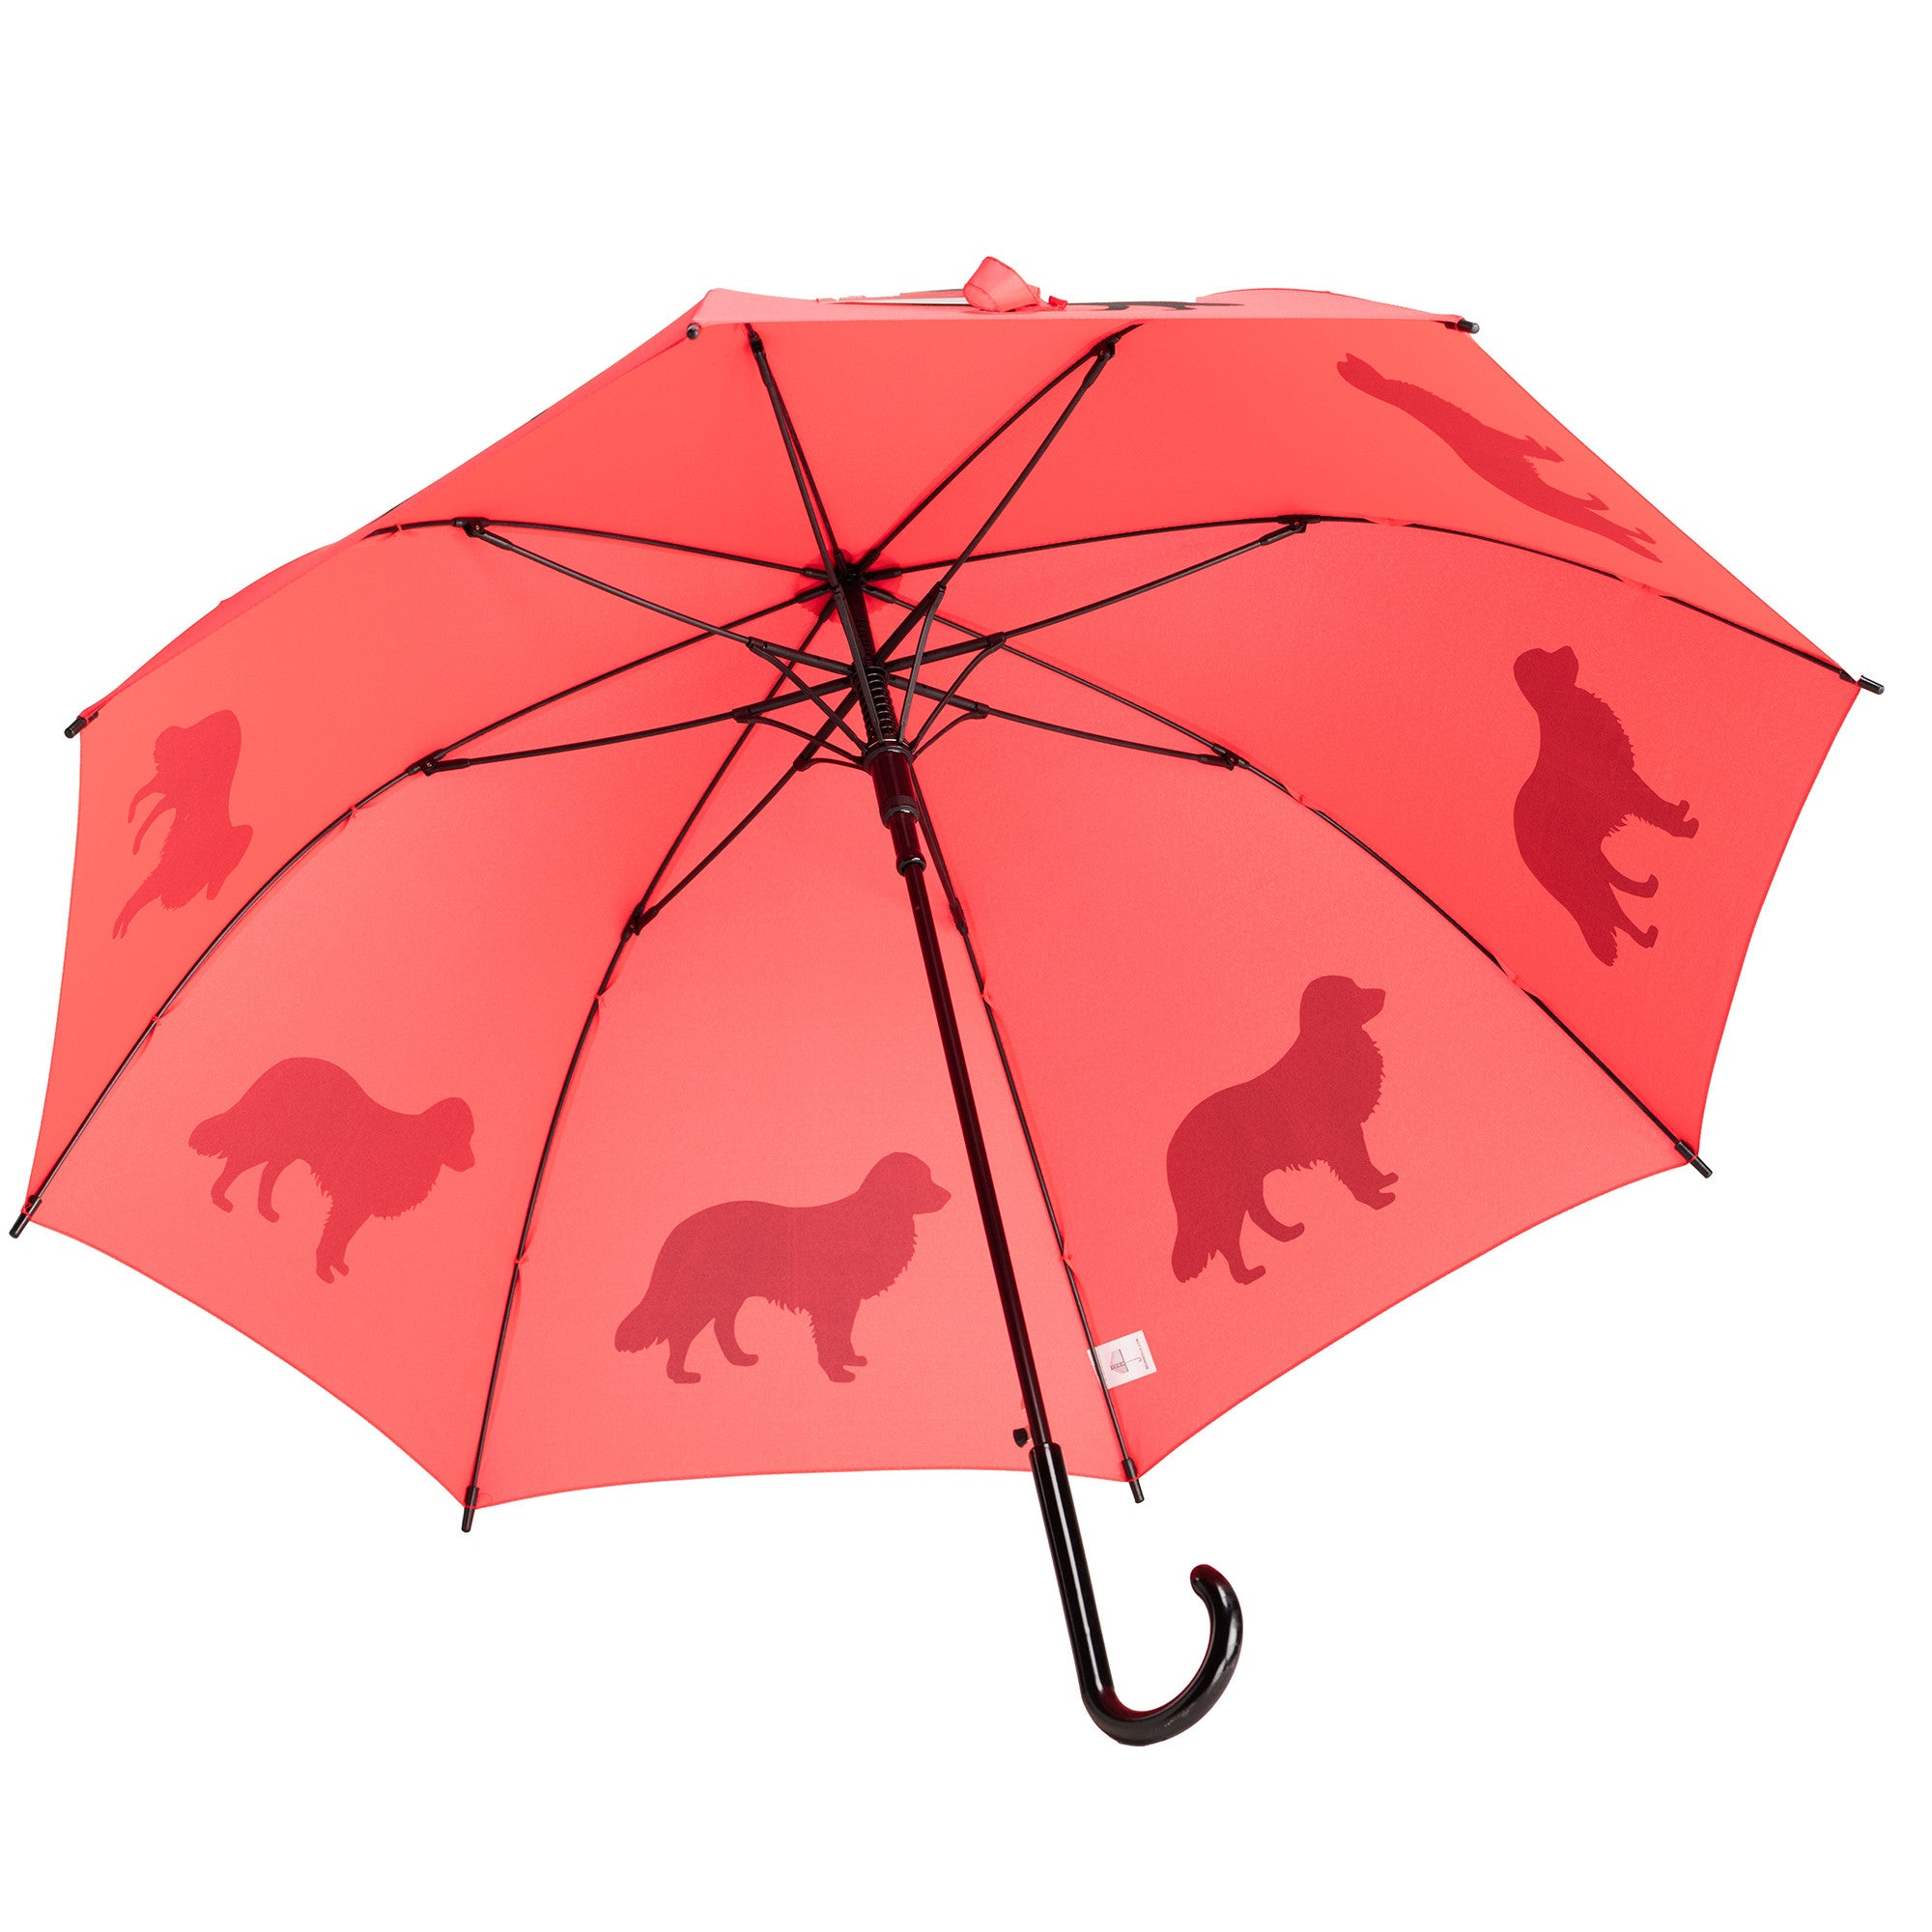 Border Collie Umbrella Black on Red from San Francisco